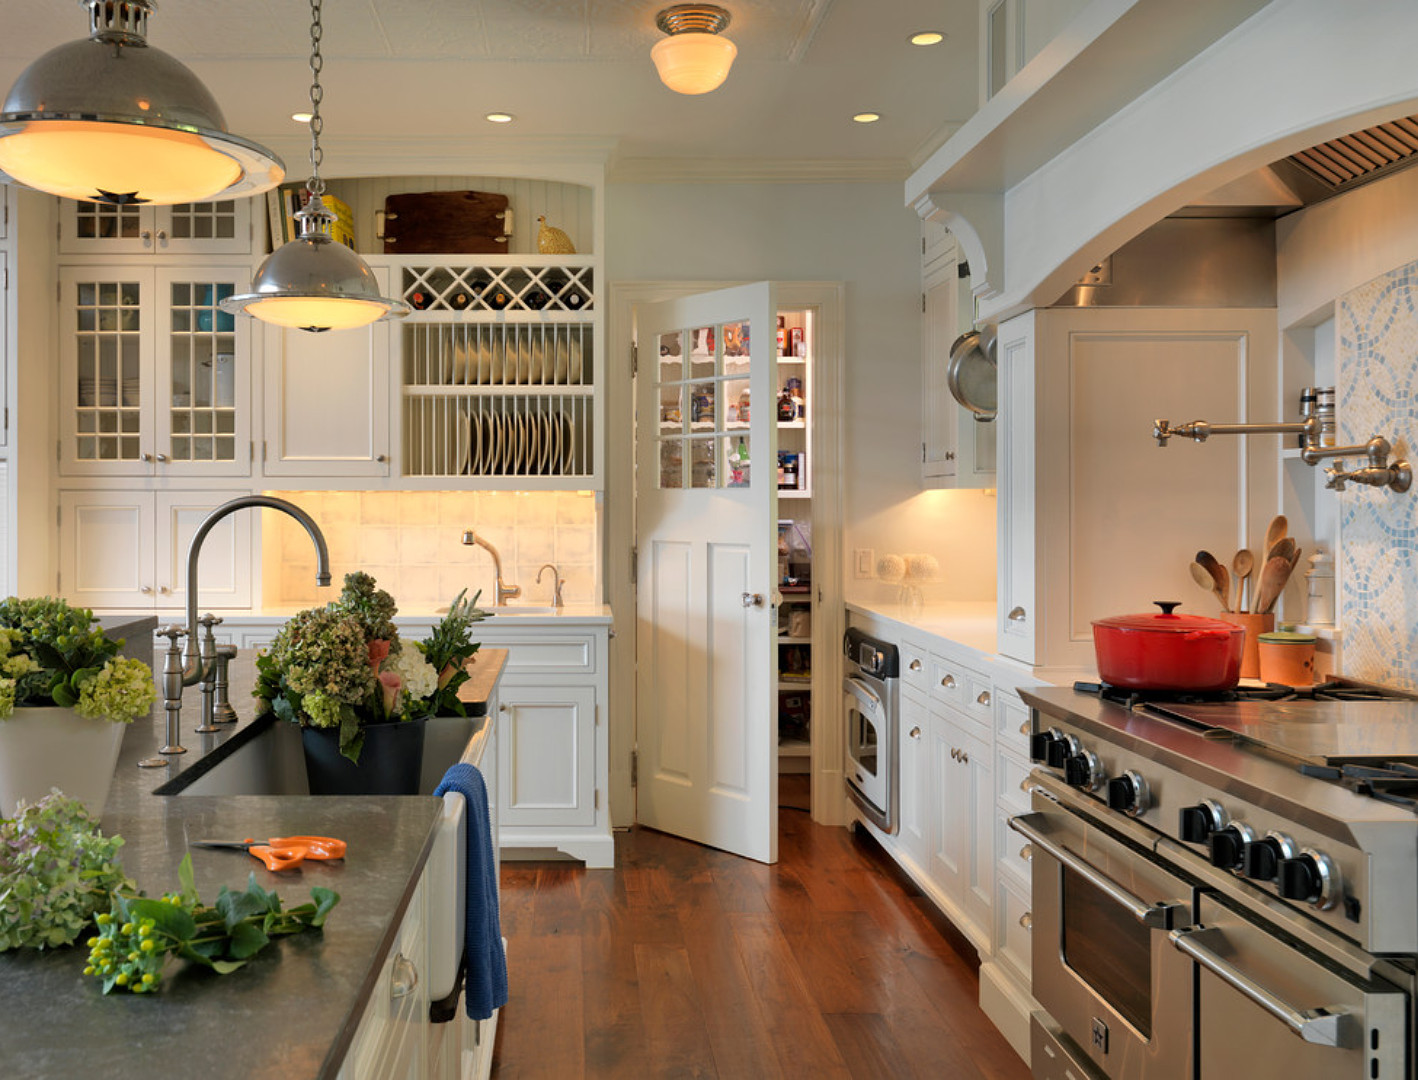 Kitchen Pantry. Kitchen Pantry Ideas. Kitchen Pantry Door. #KItchen #KItchenPantry #KitchenPantryDoor Carpenter & MacNeille.